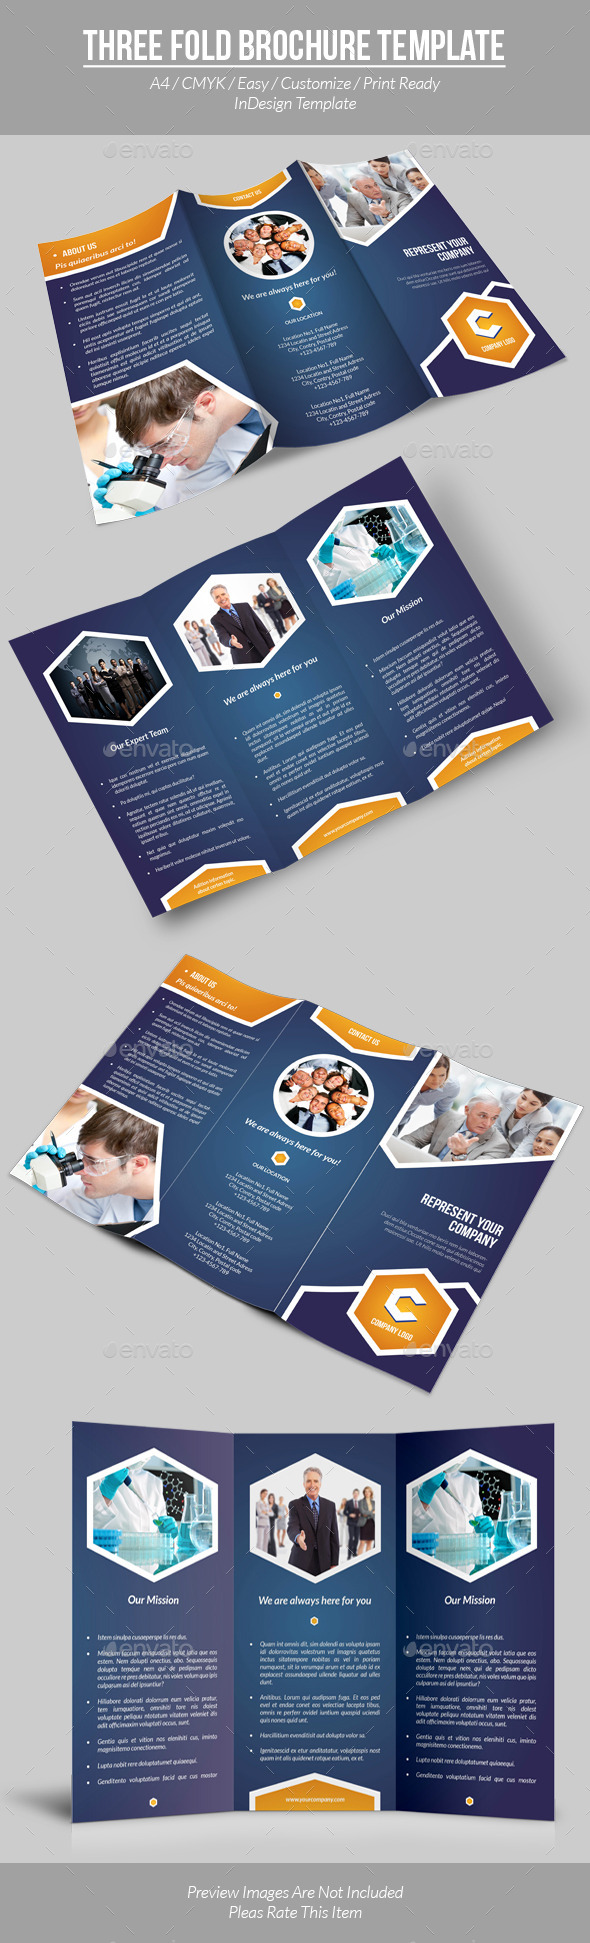 GraphicRiver Three Fold Brochure Template 9477440